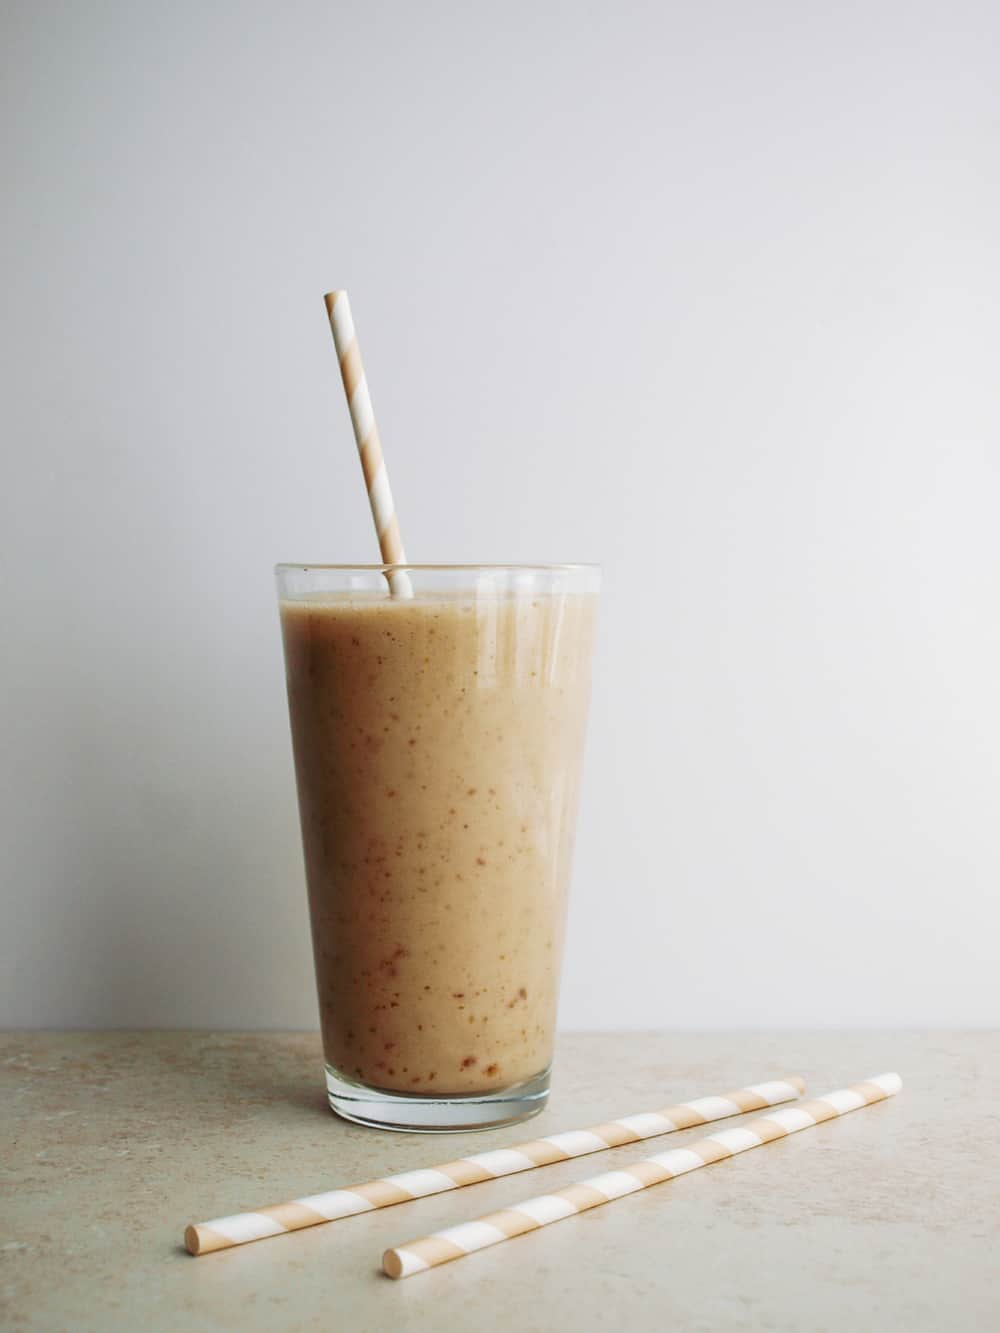 vanilla date smoothie in glass with straw